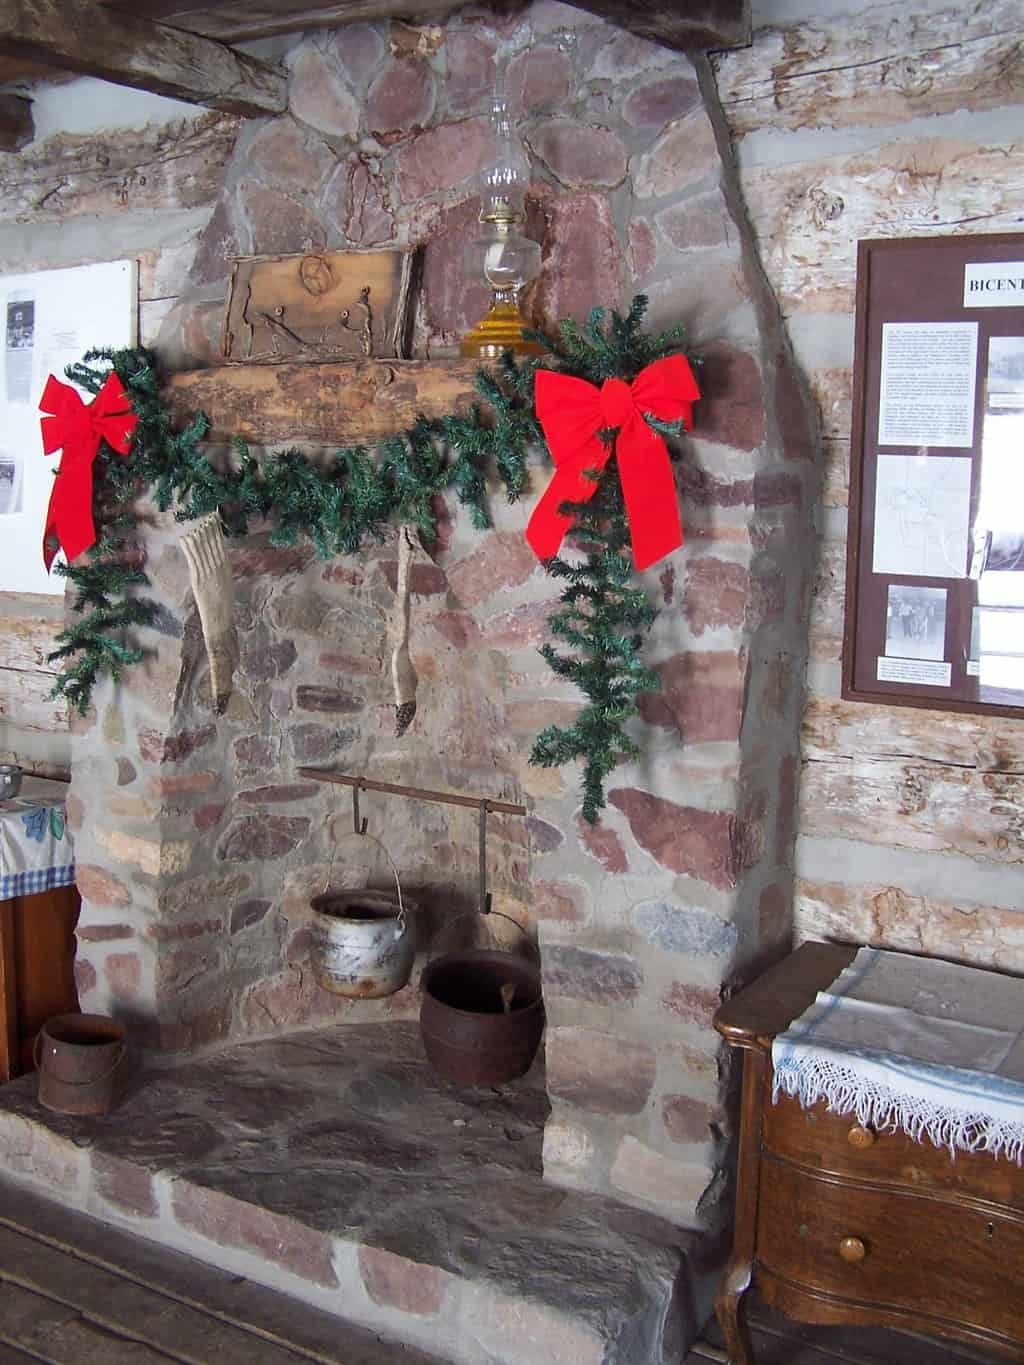 Yuletide in Chloride happens daily Dec. 1-8 in the New Mexico ghost town in Sierra County.